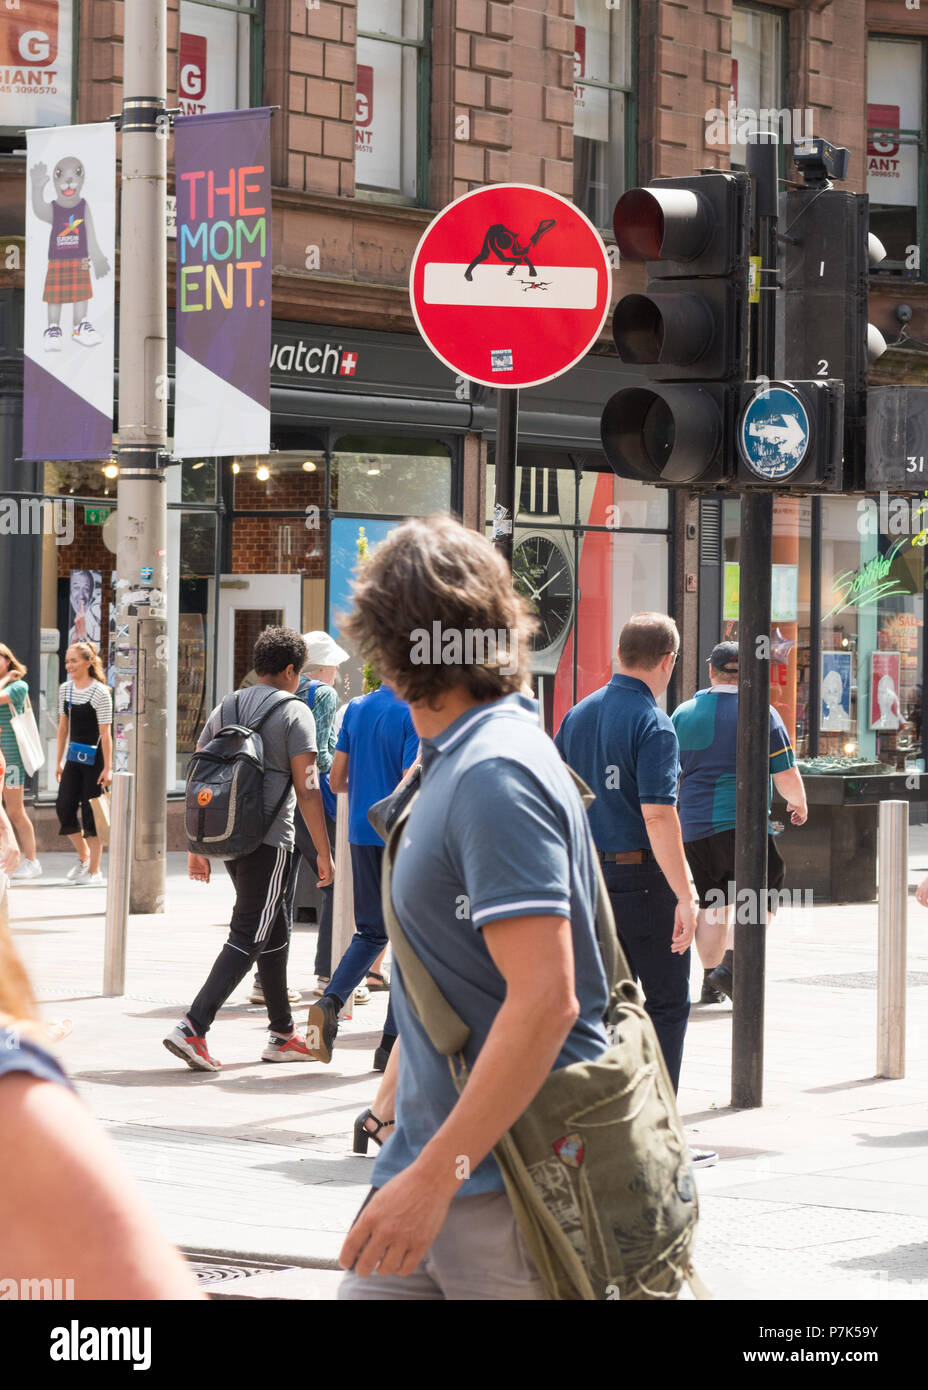 Man looking back at Clet Abraham street art road sign title 'The Clash'  on Buchanan Street, Glasgow, Scotland, UK - Stock Image